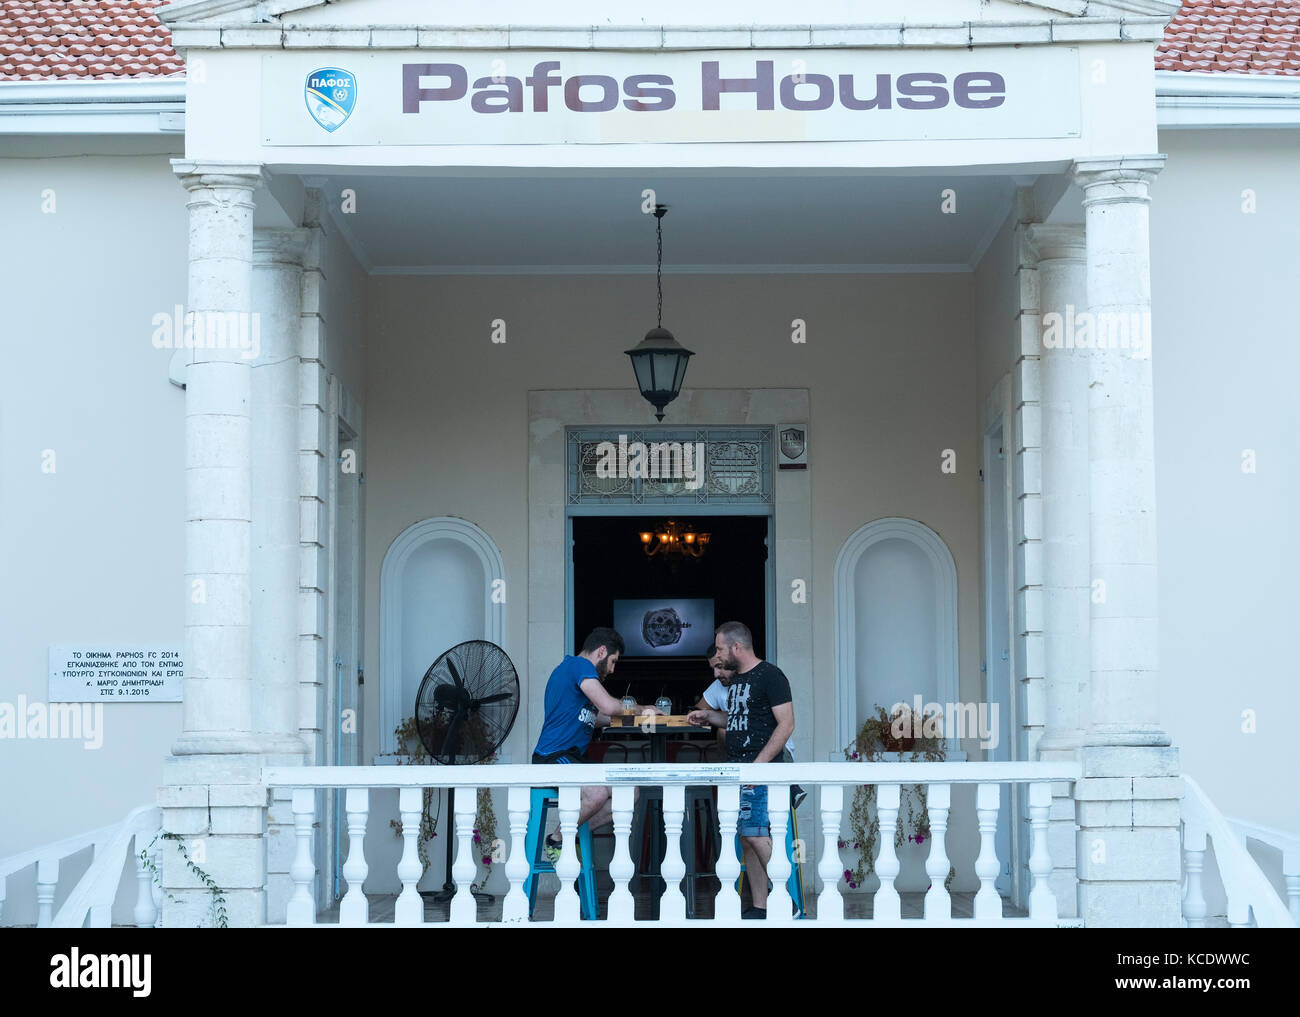 Pafos house sports bar in Paphos old town, Cyprus - Stock Image